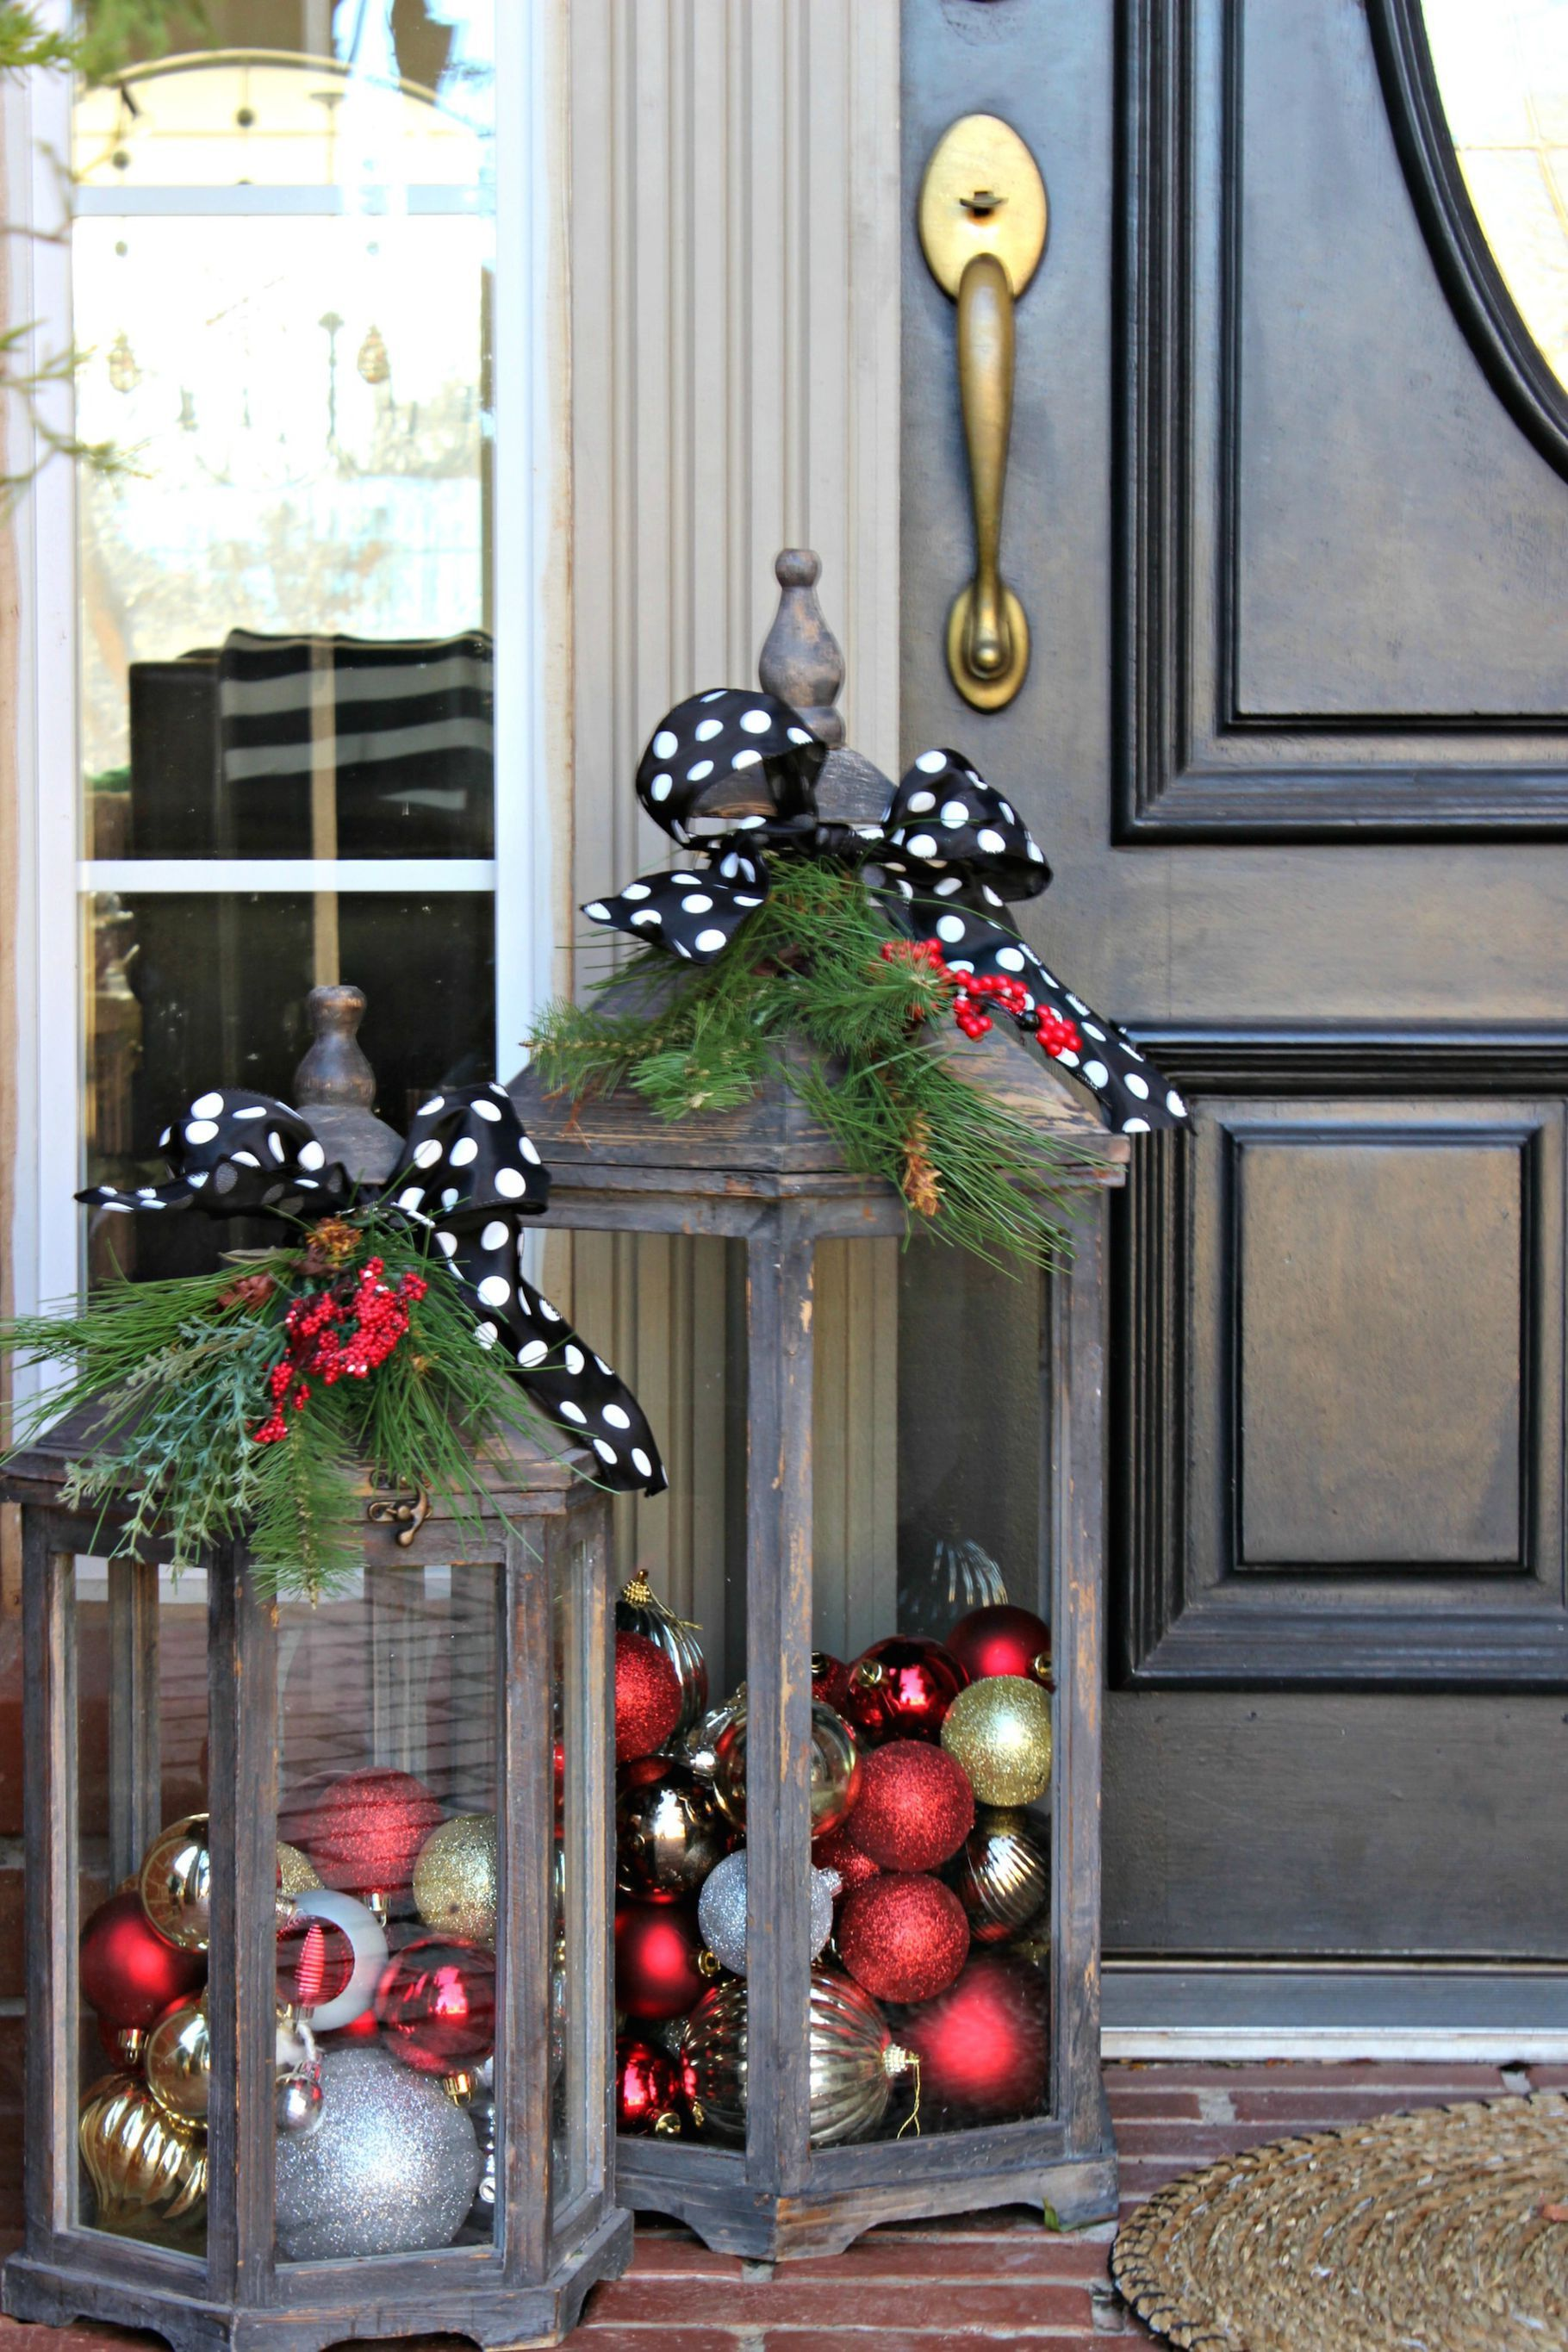 Elegant Outdoor Decorations That Are Full of Christmas Spirit #christmasdecor